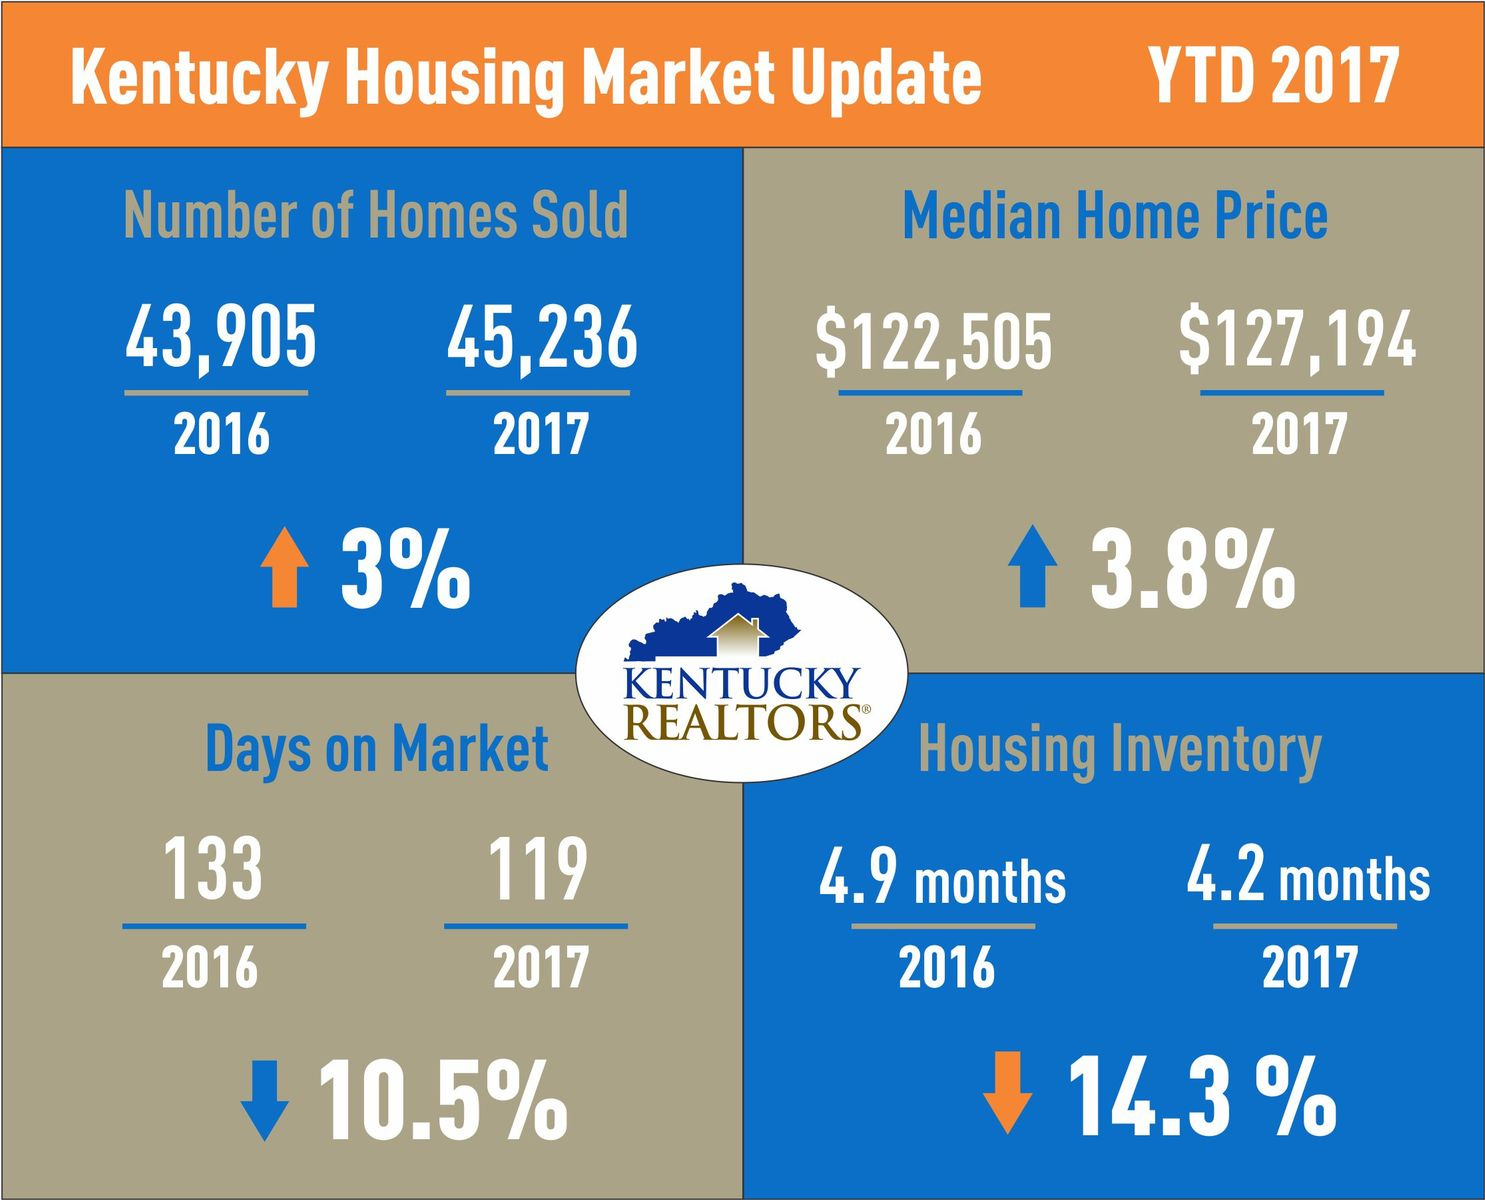 Kentucky Housing Market Update Oct 2017 YTD